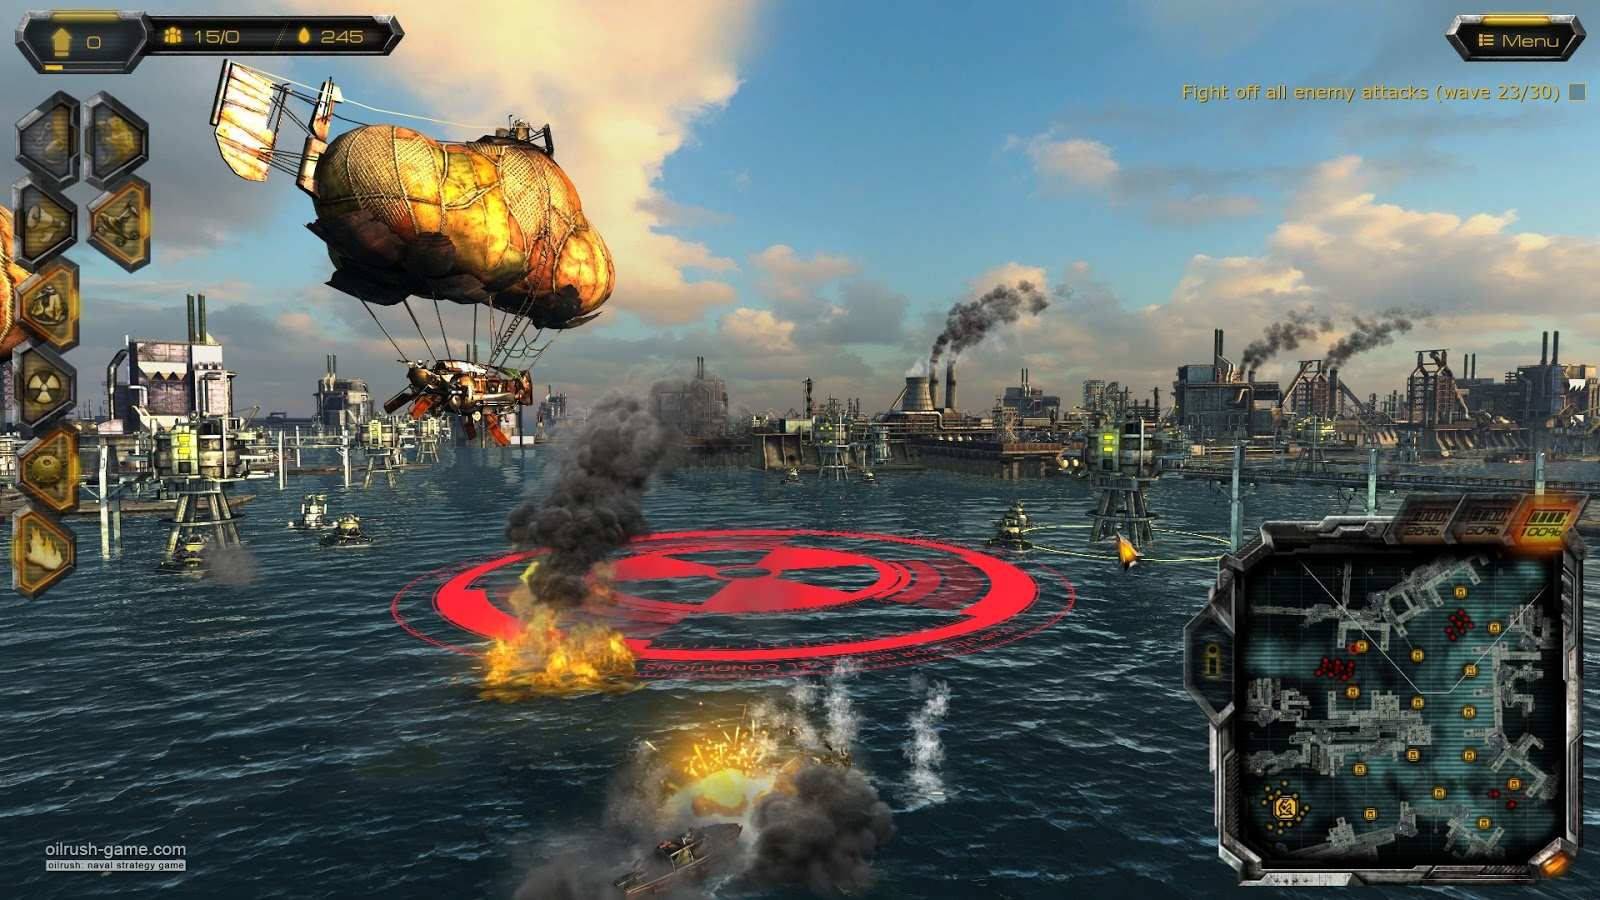 Top tank fighting game pc browser mmo online download free-to-play.